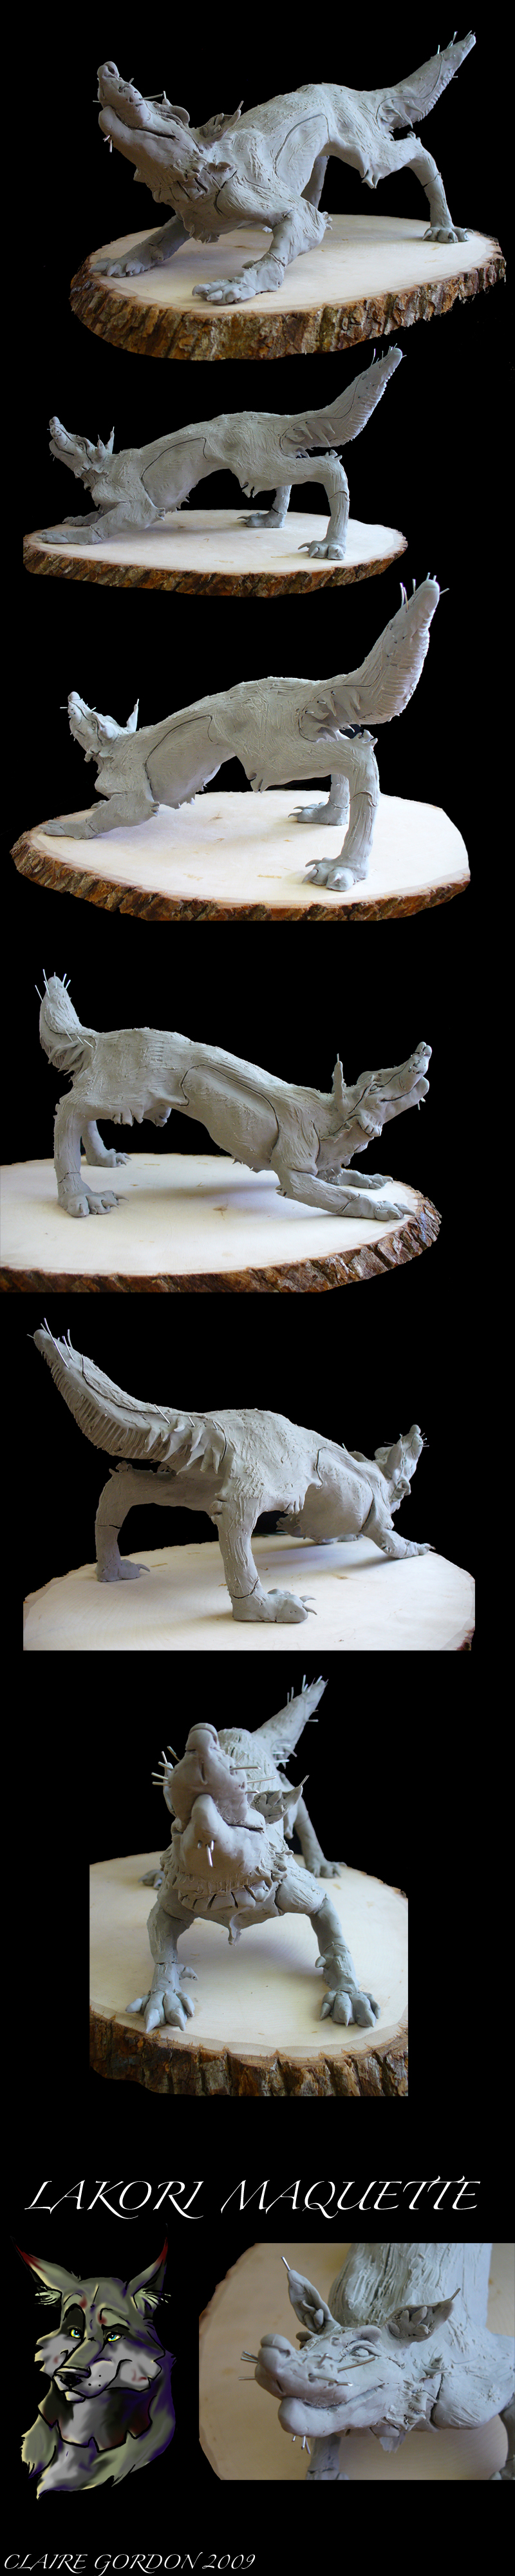 Lakori Maquette by Clairictures